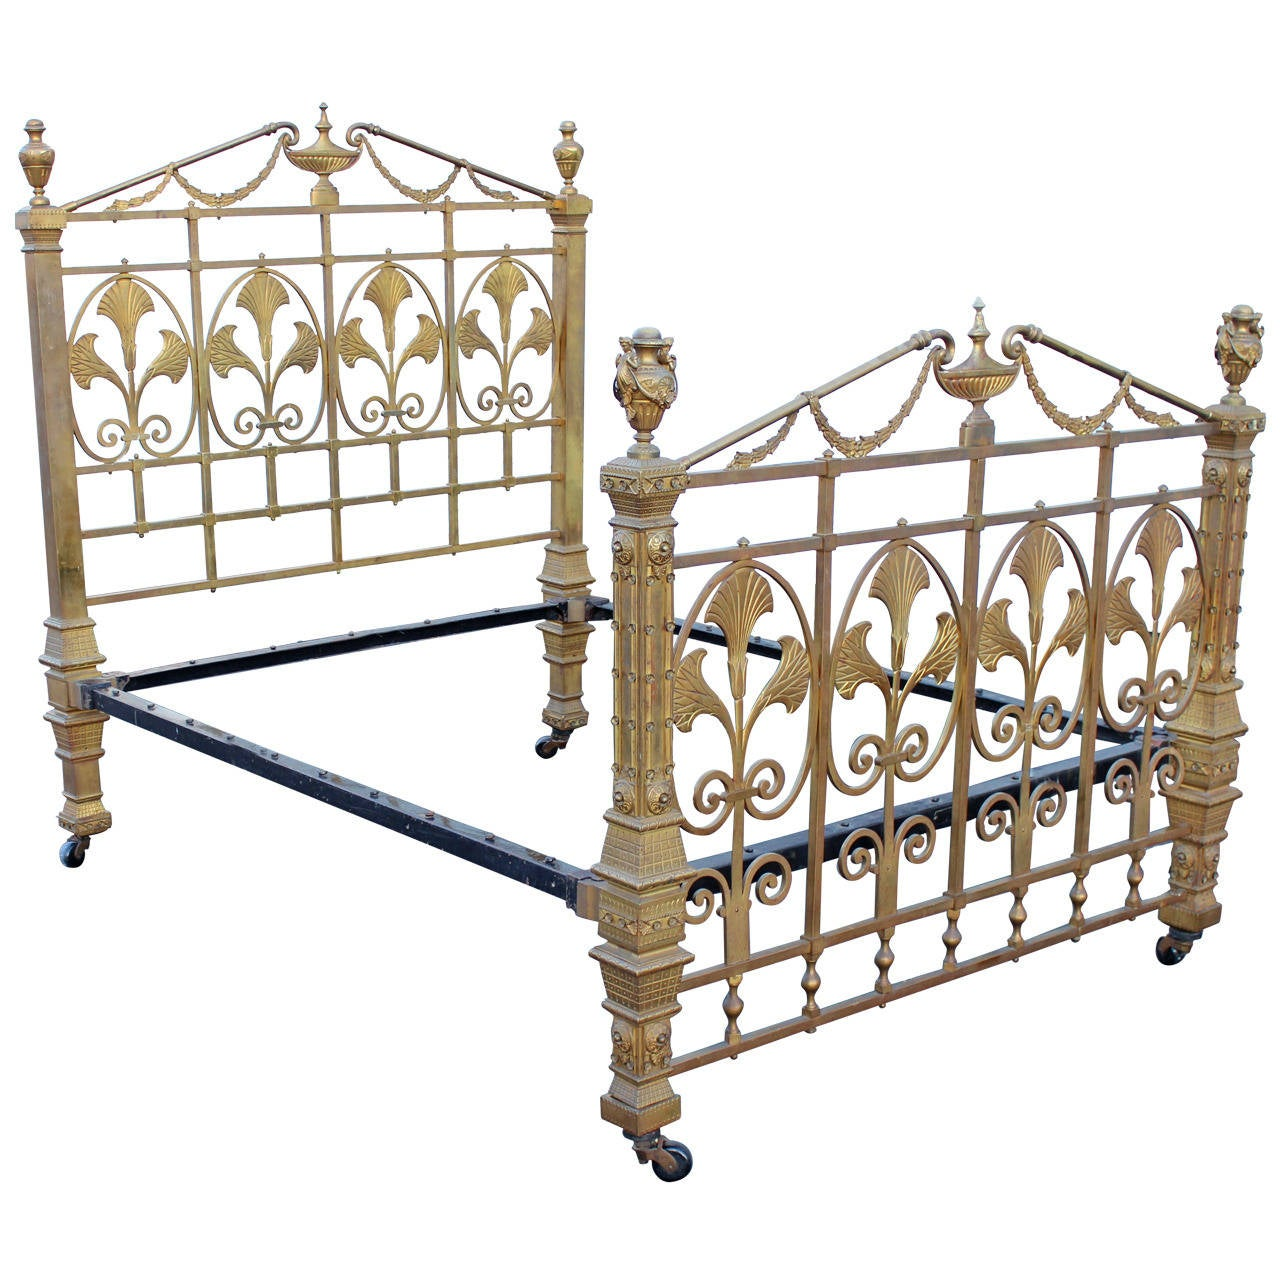 19th c french style brass bed albert phillips excelsior works england 1